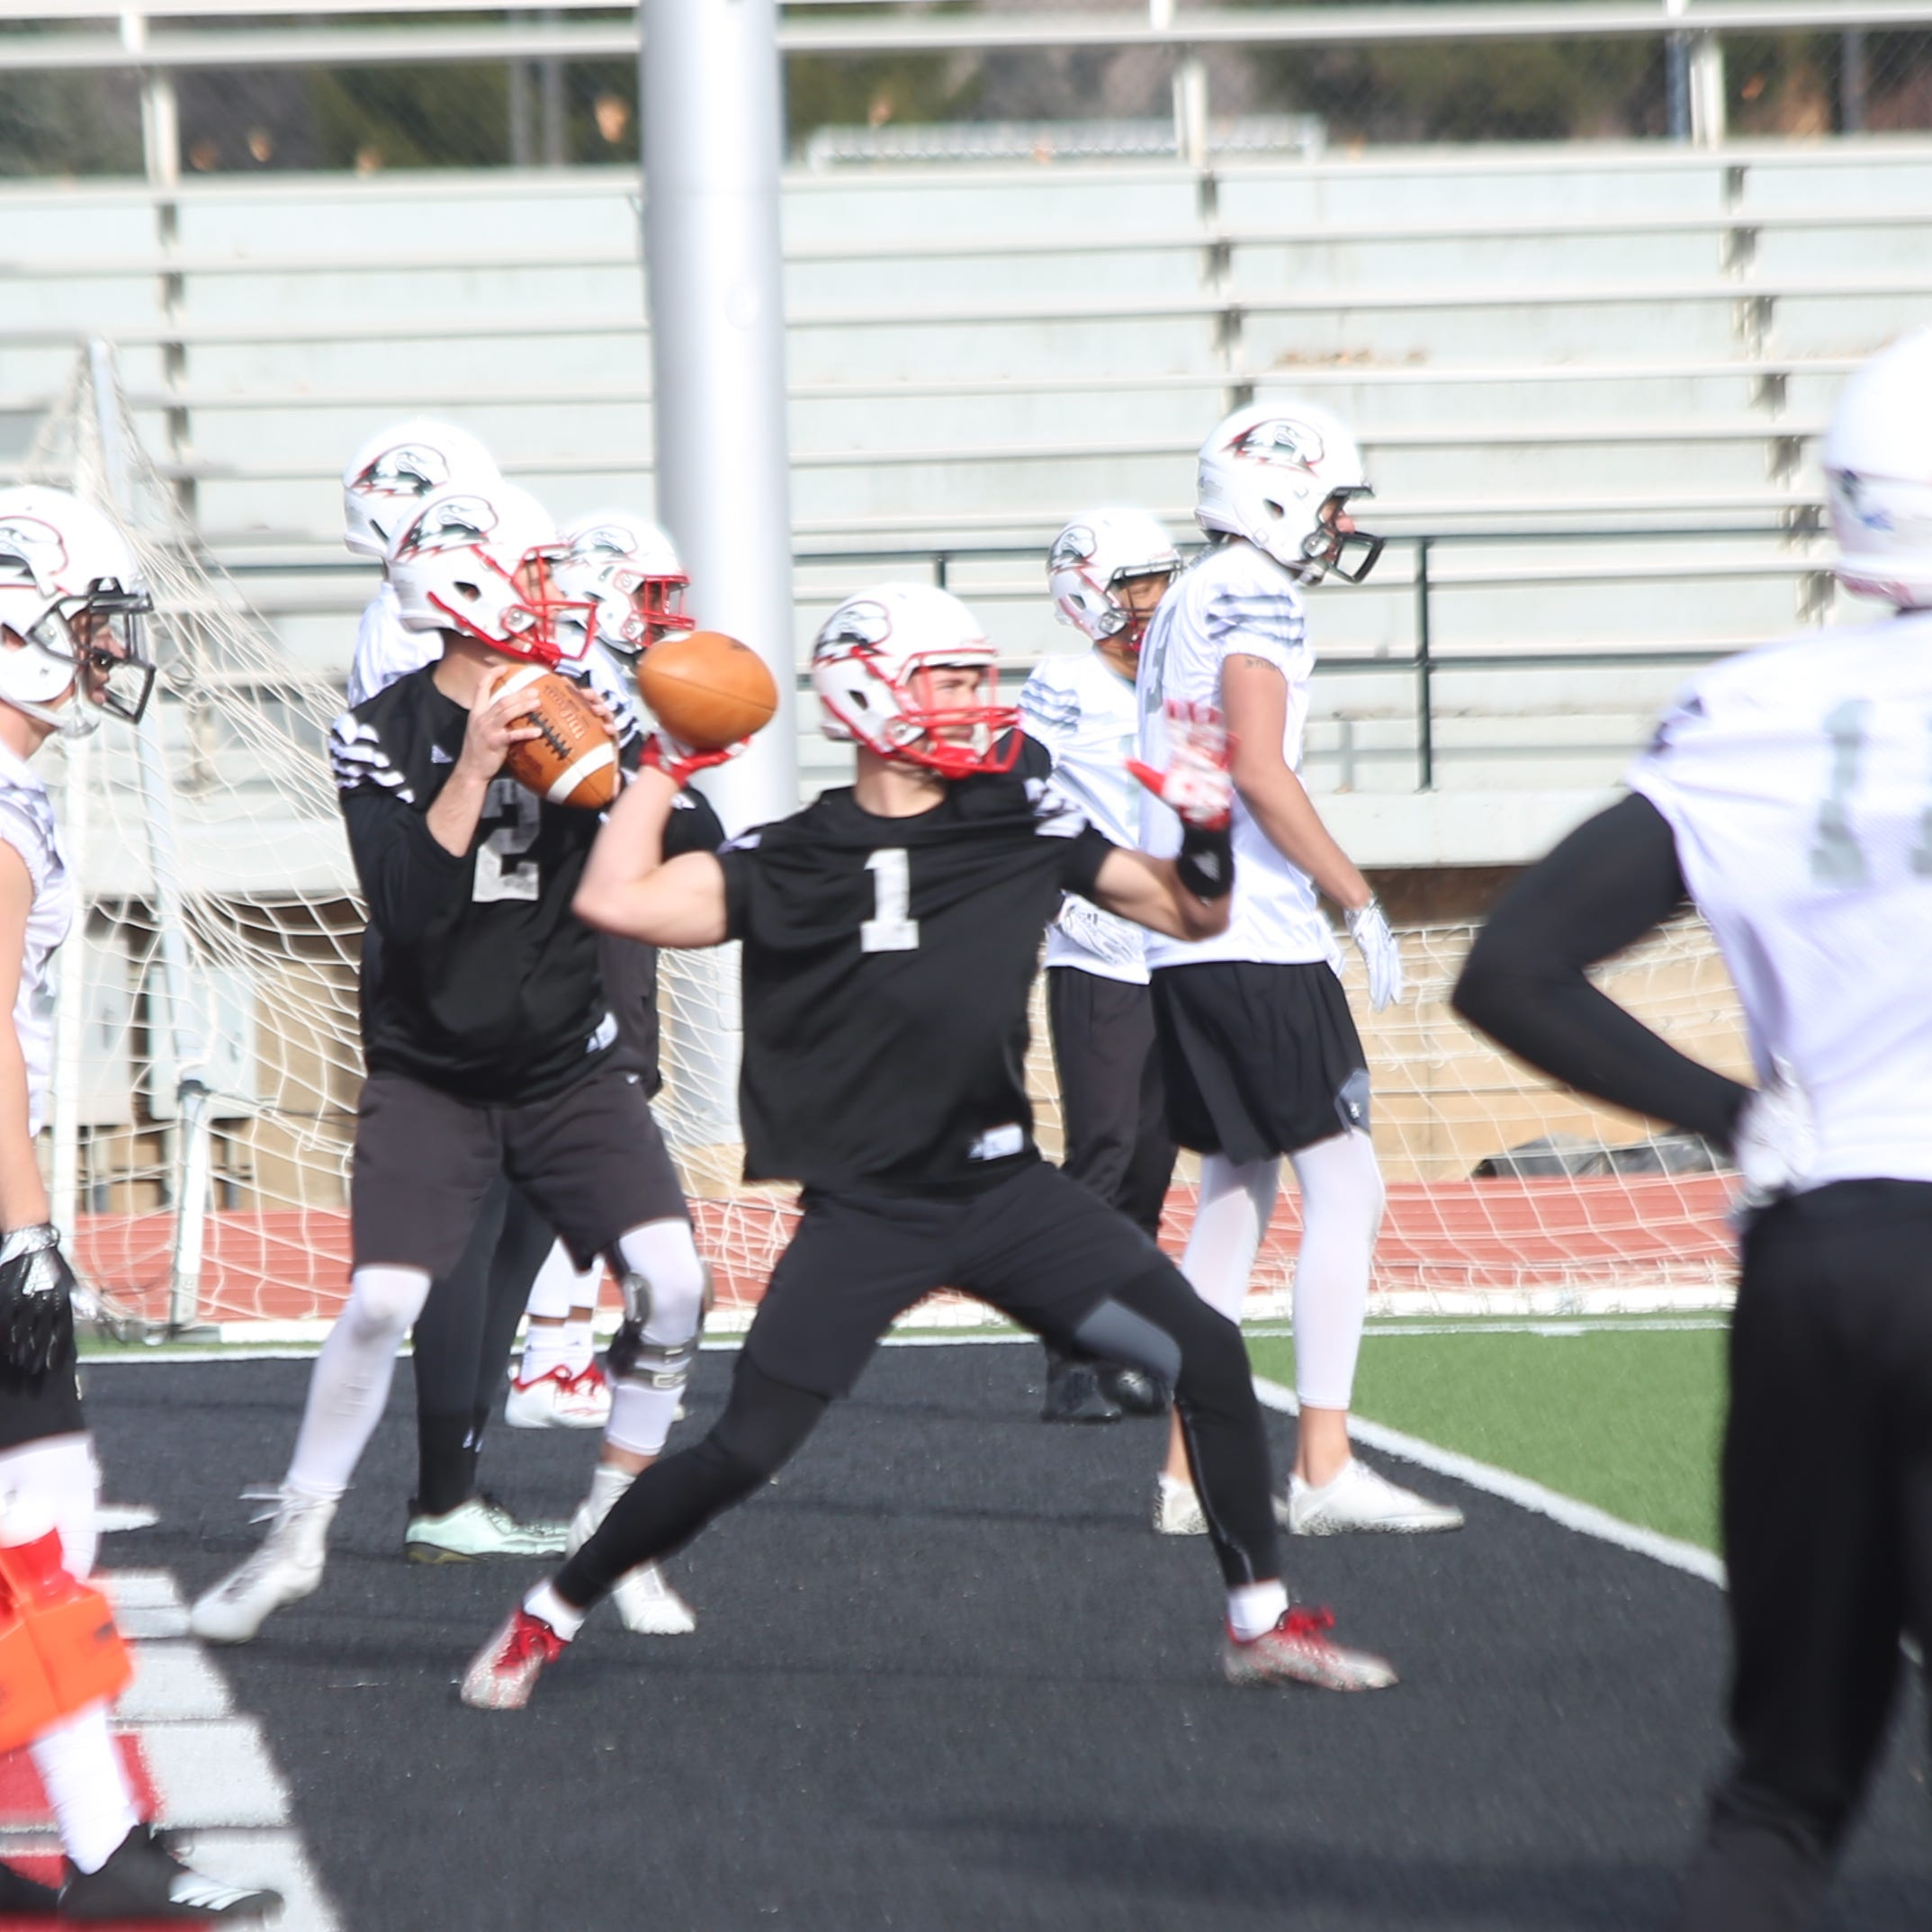 SUU returns an experienced offense, but is looking for stability at quarterback